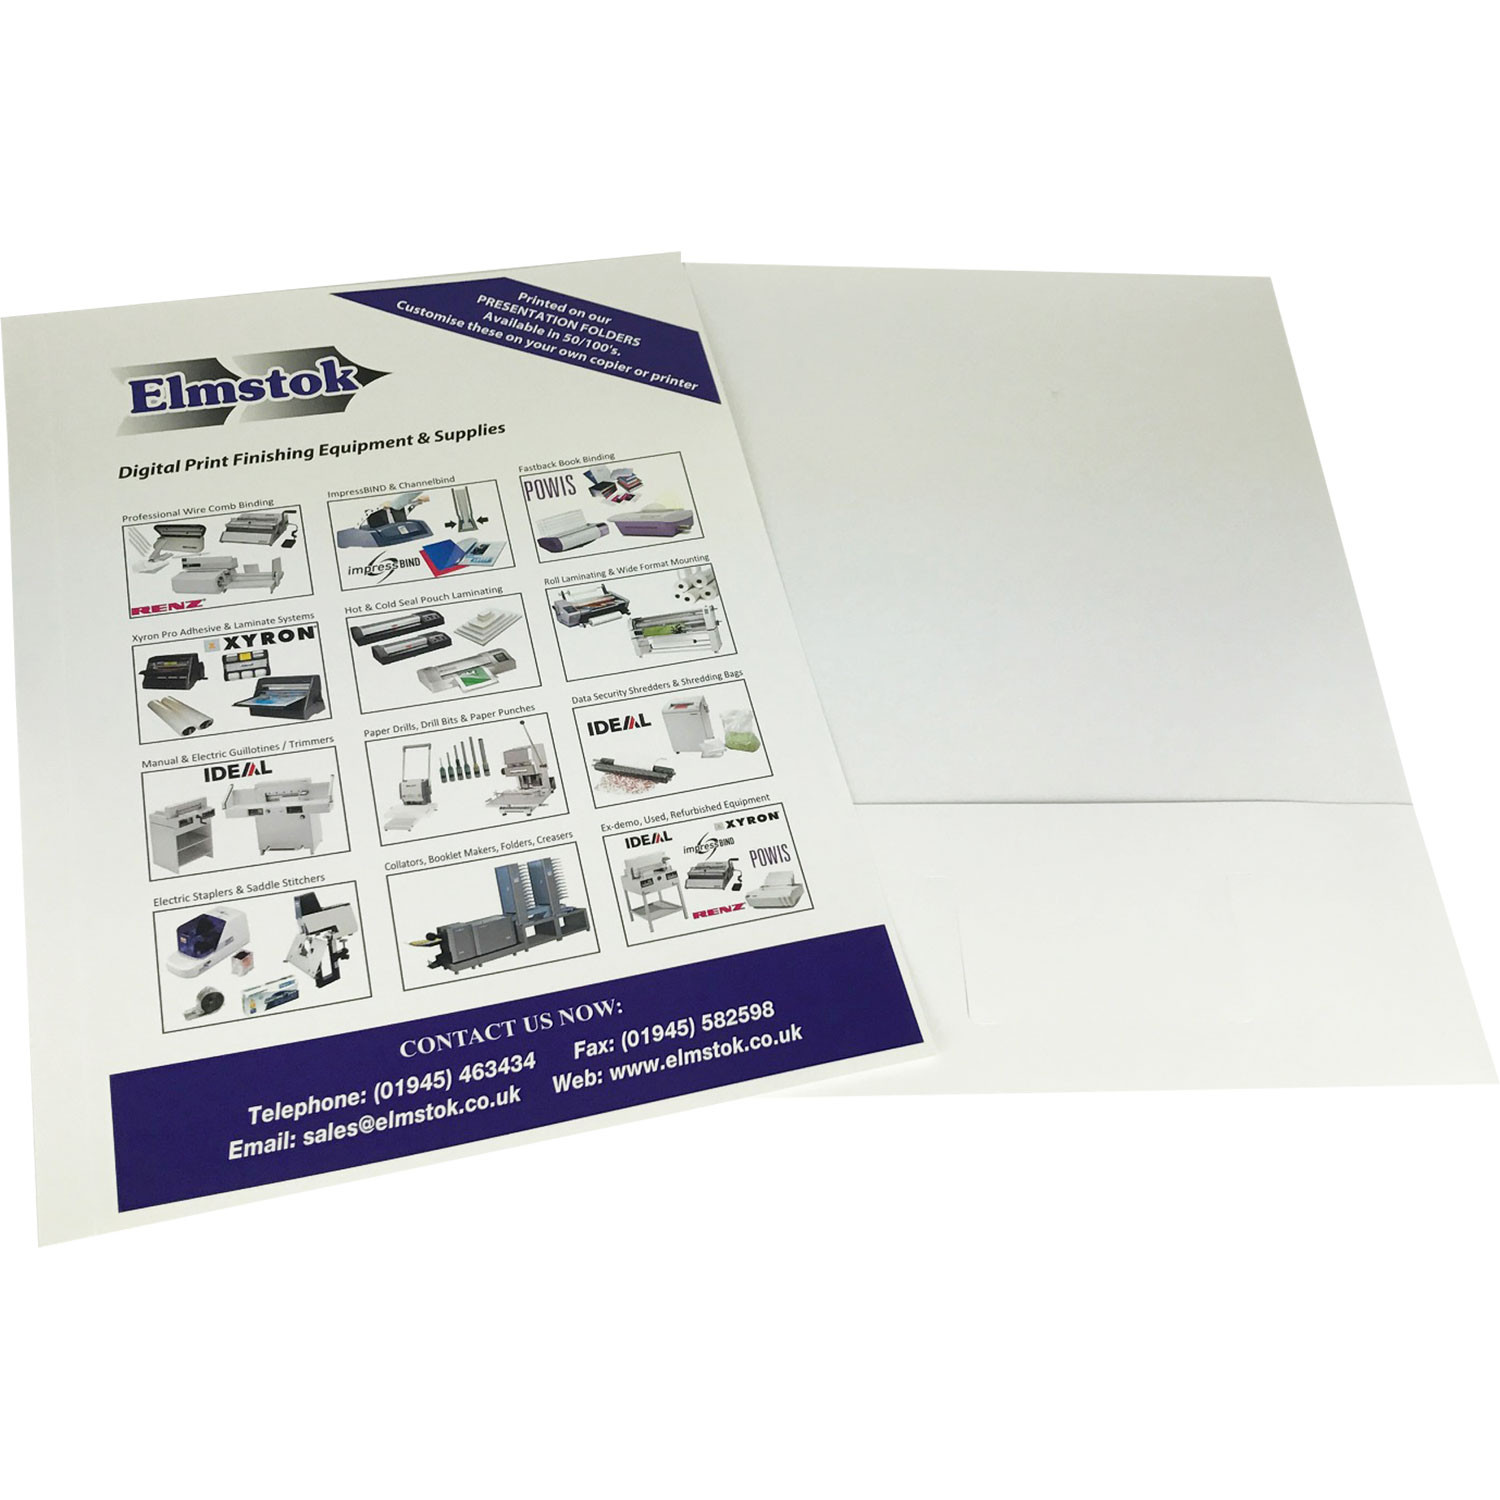 Simply Attach front and back folder piece together after printing